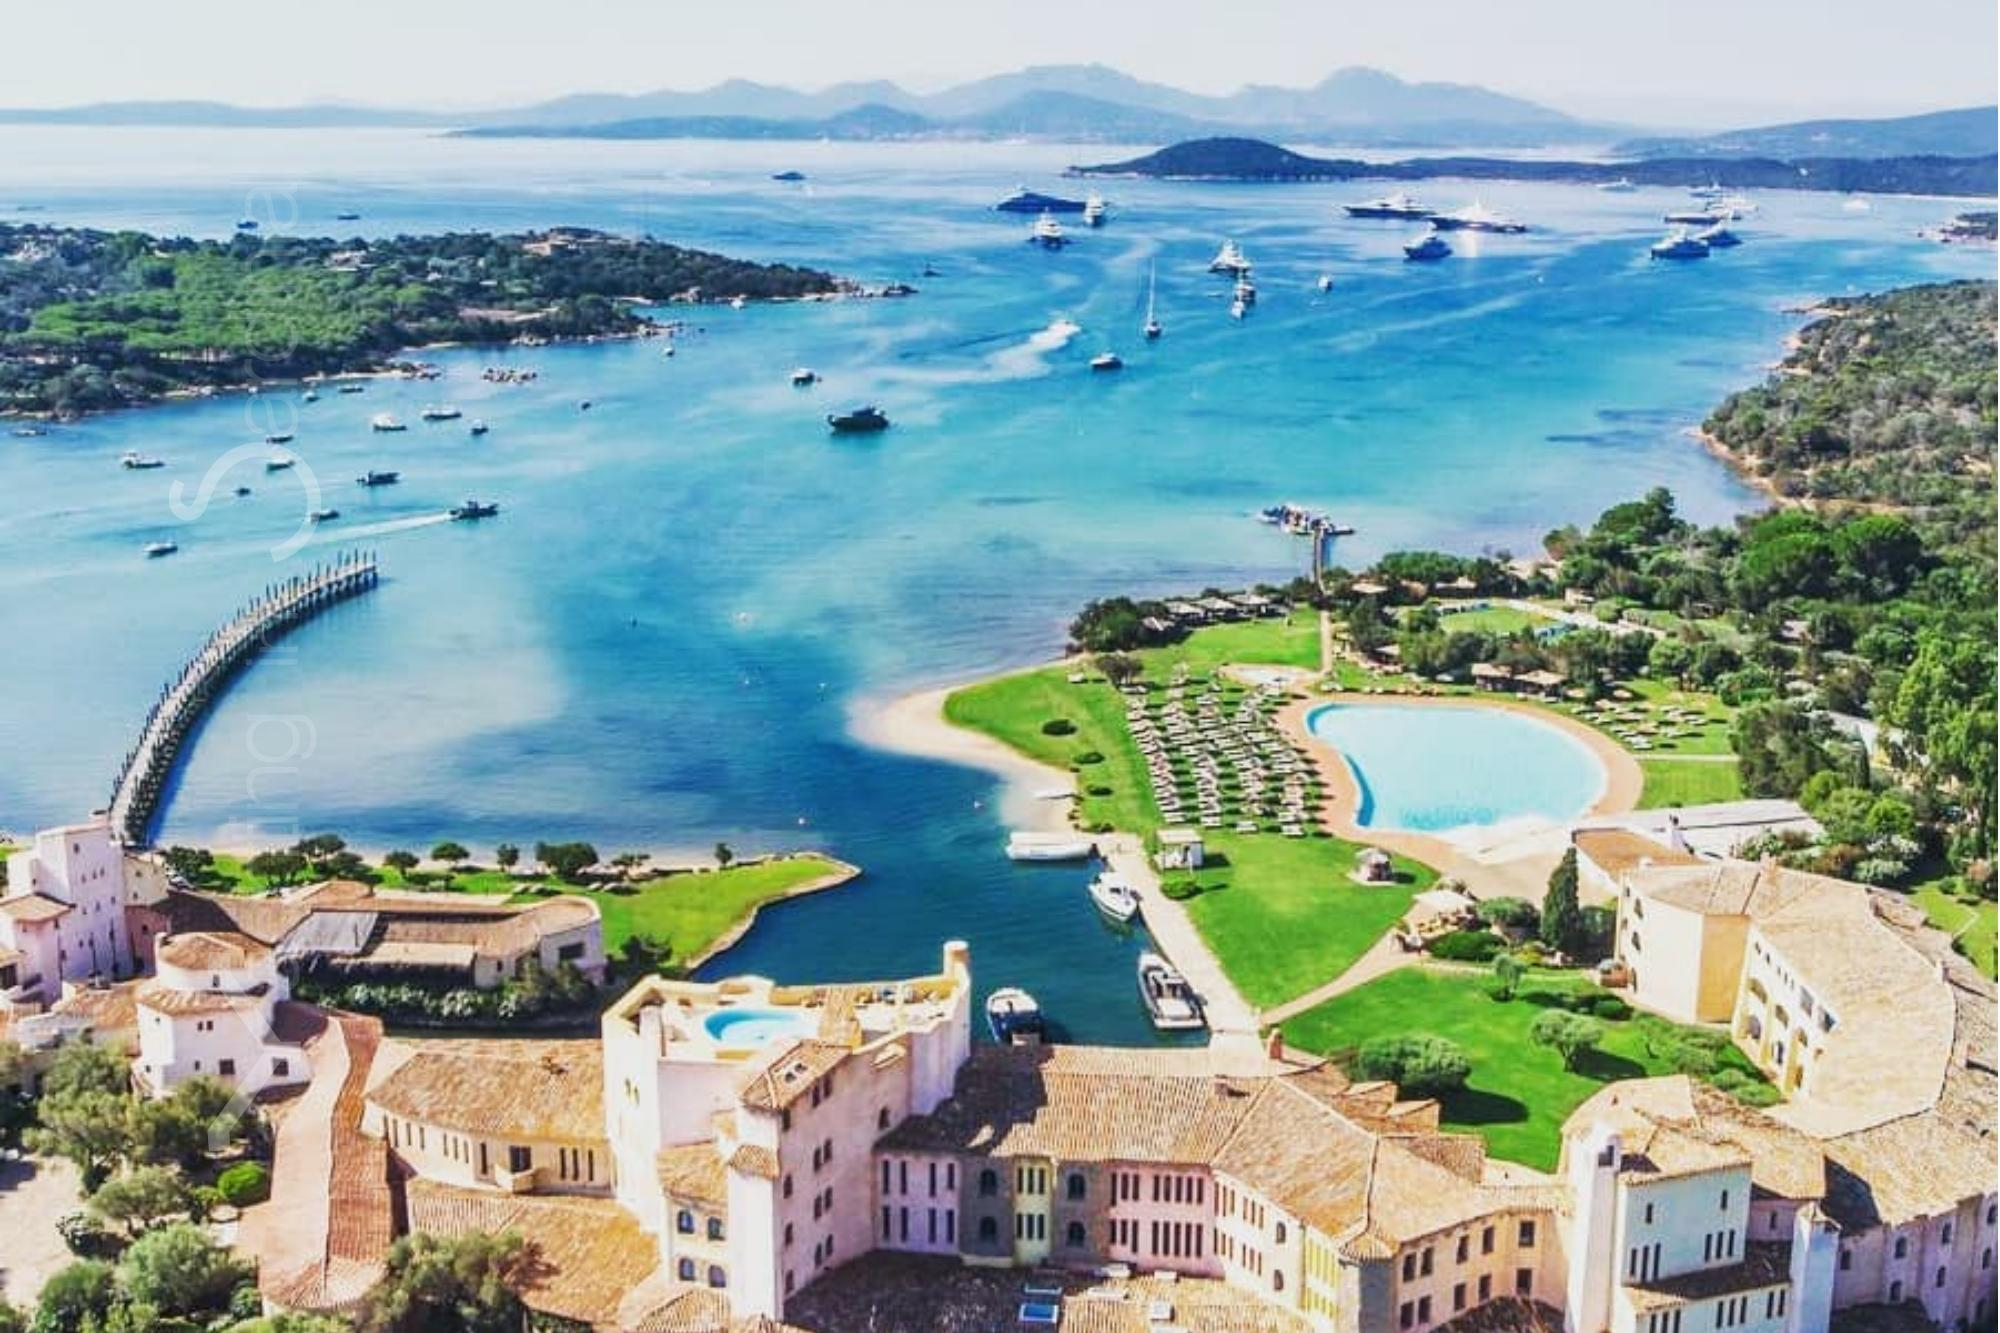 🌟⛵️ Spend your new year's resolutions sailing through Sardinia & Corsica! 🥳